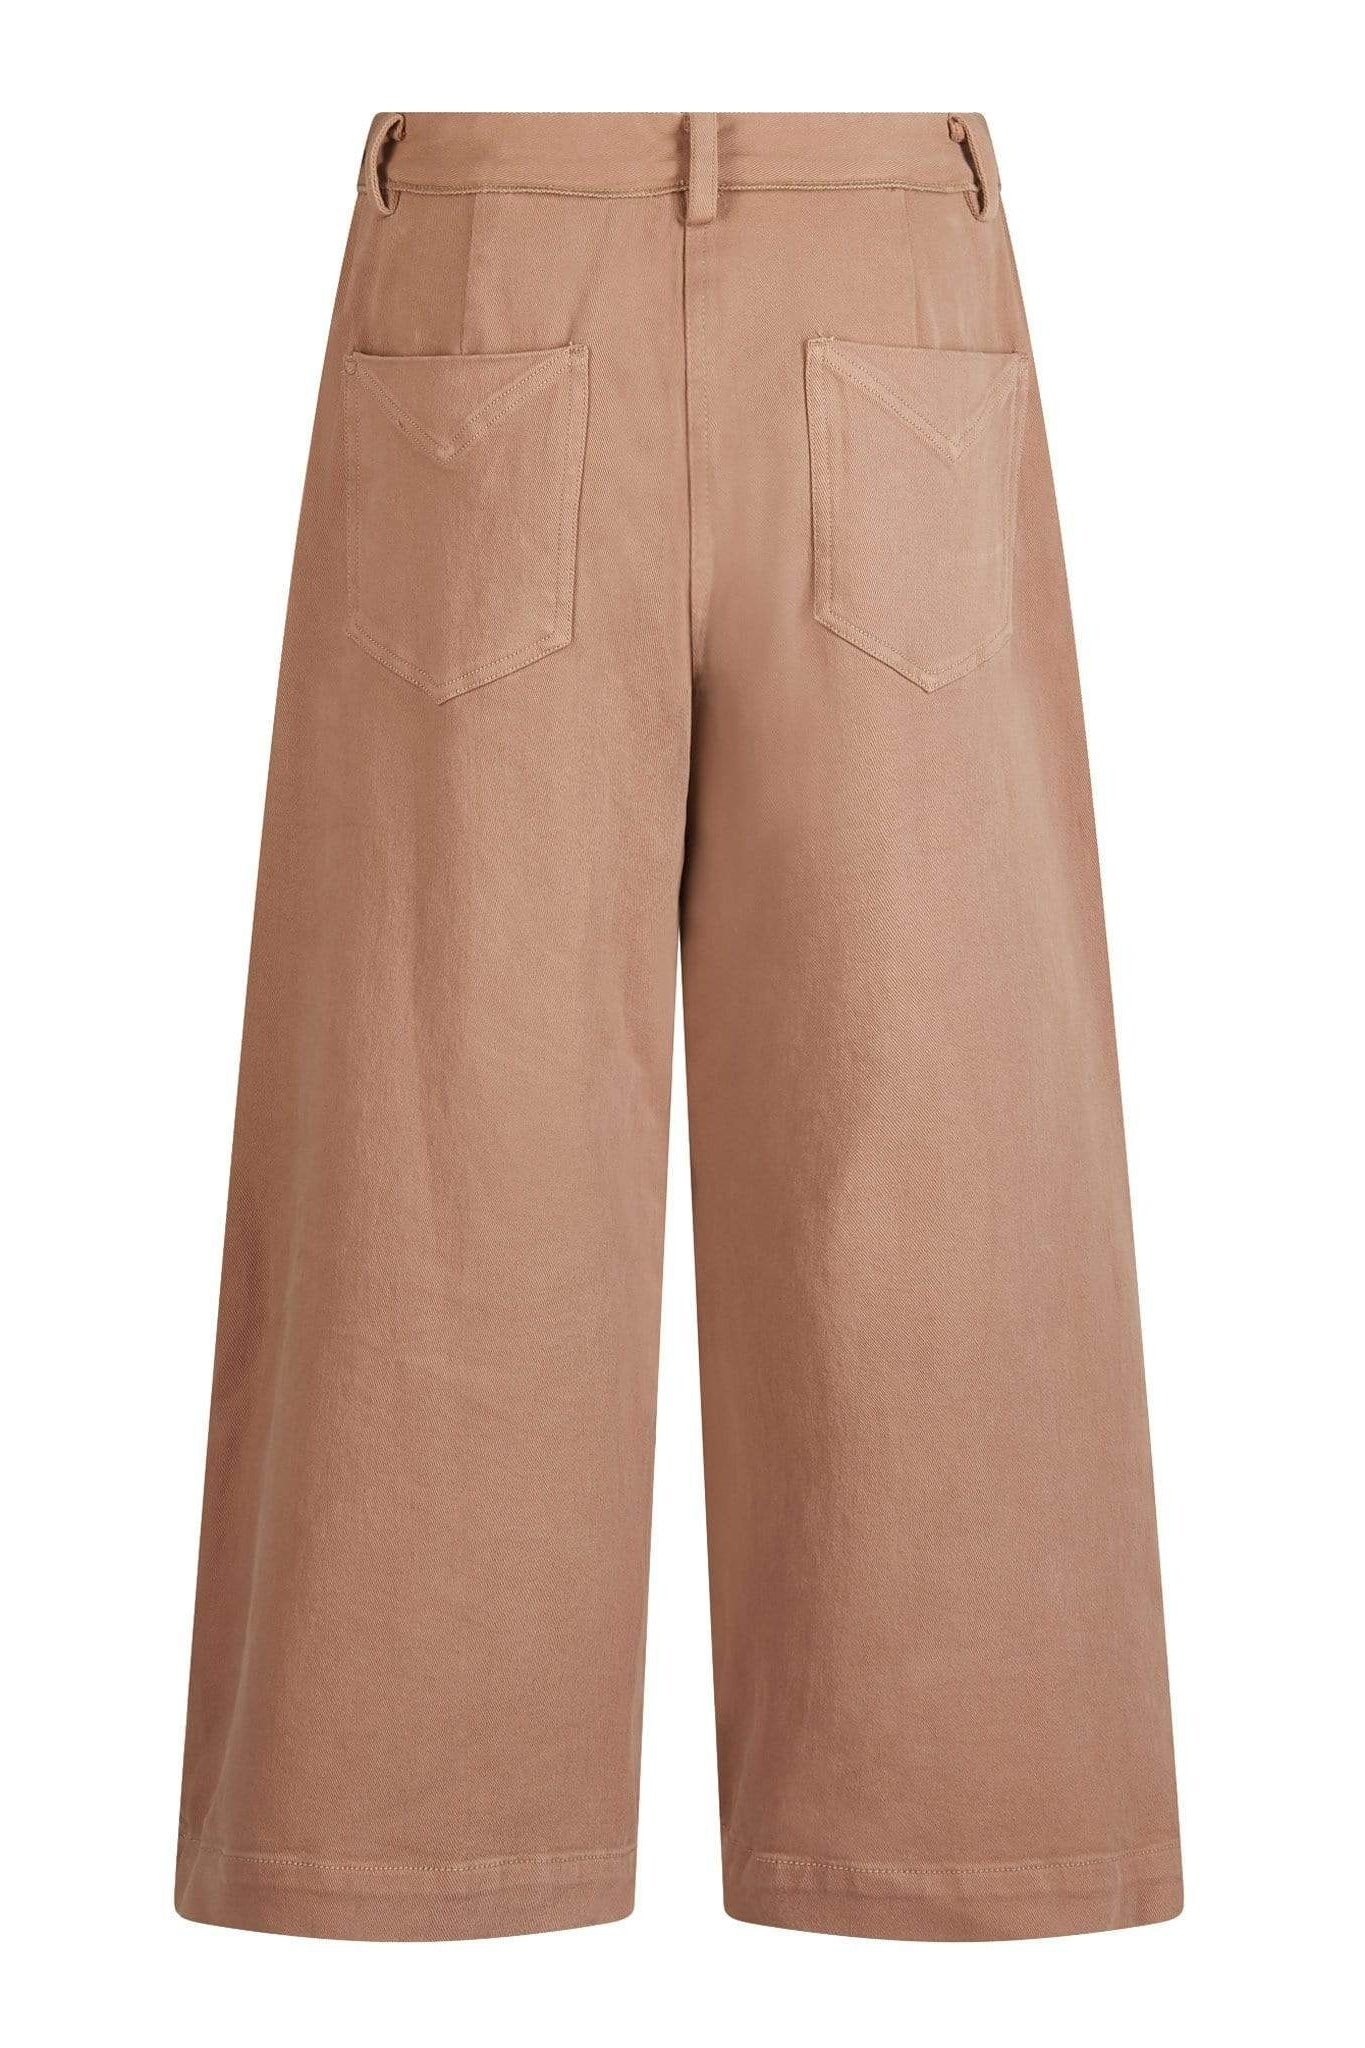 KOMODO Trousers HOLY COW Organic Cotton Culottes Dark Sand sustainable fashion ethical fashion